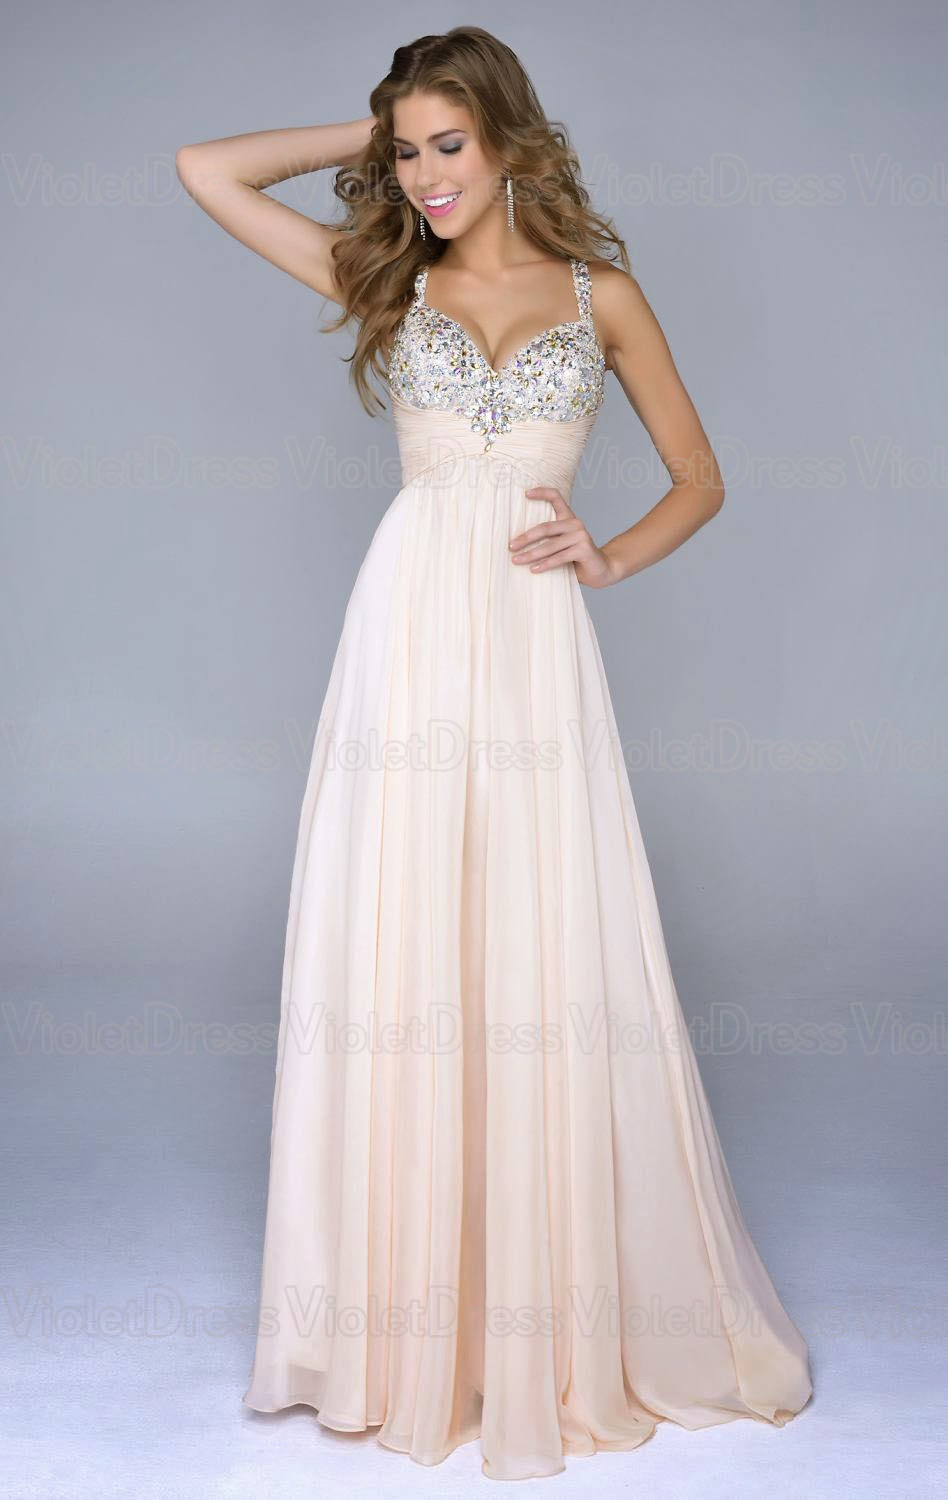 Violet Prom Dresses UK: The latest features of prom dress